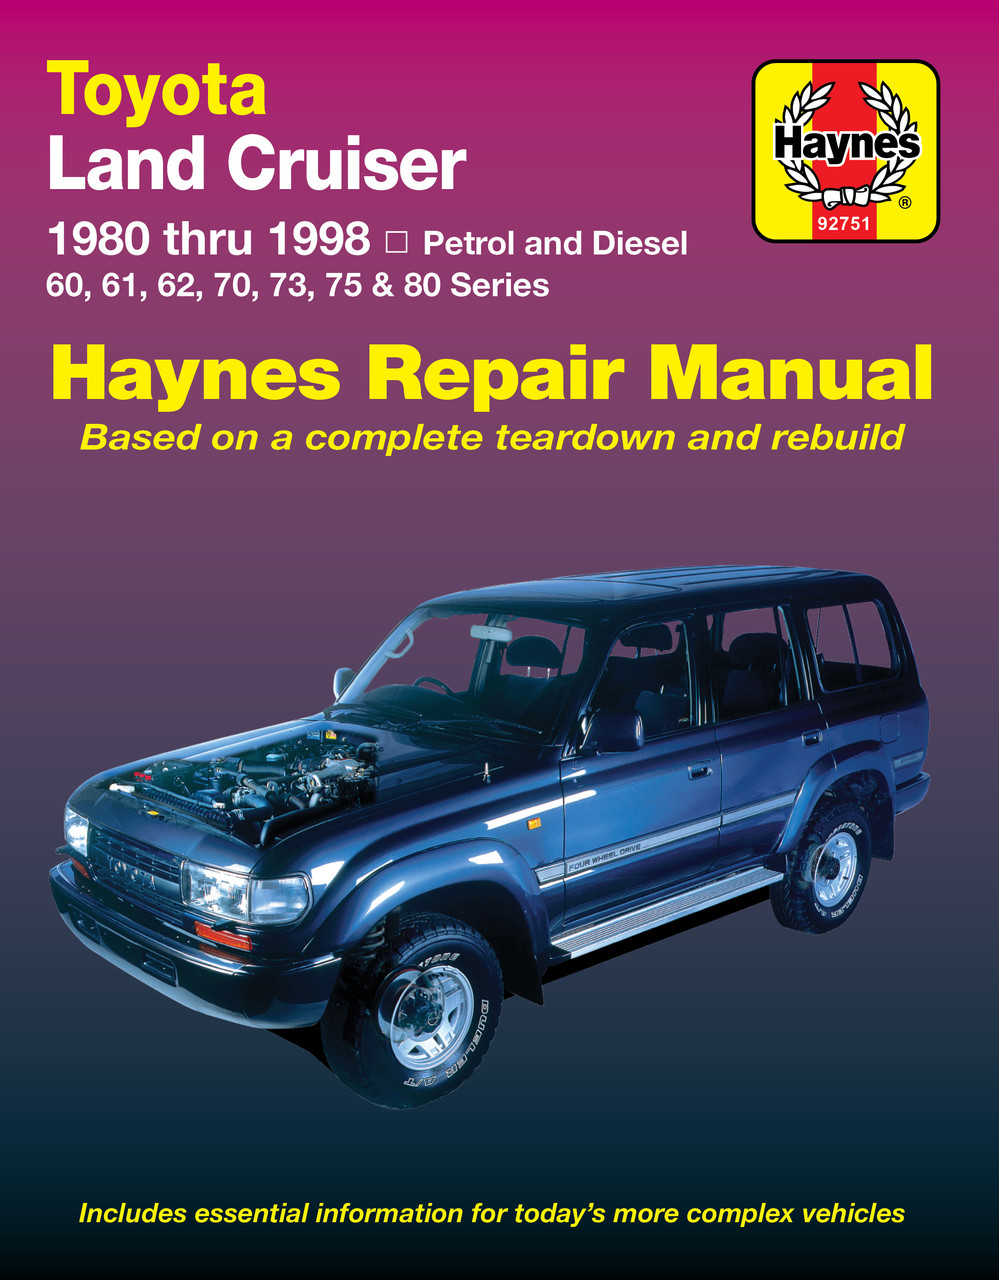 toyota land cruiser fj and fzj series petrol diesel 1980 1998 rh automotobookshop com au 76 FJ40 Landcruiser 76 Land Cruiser No Top